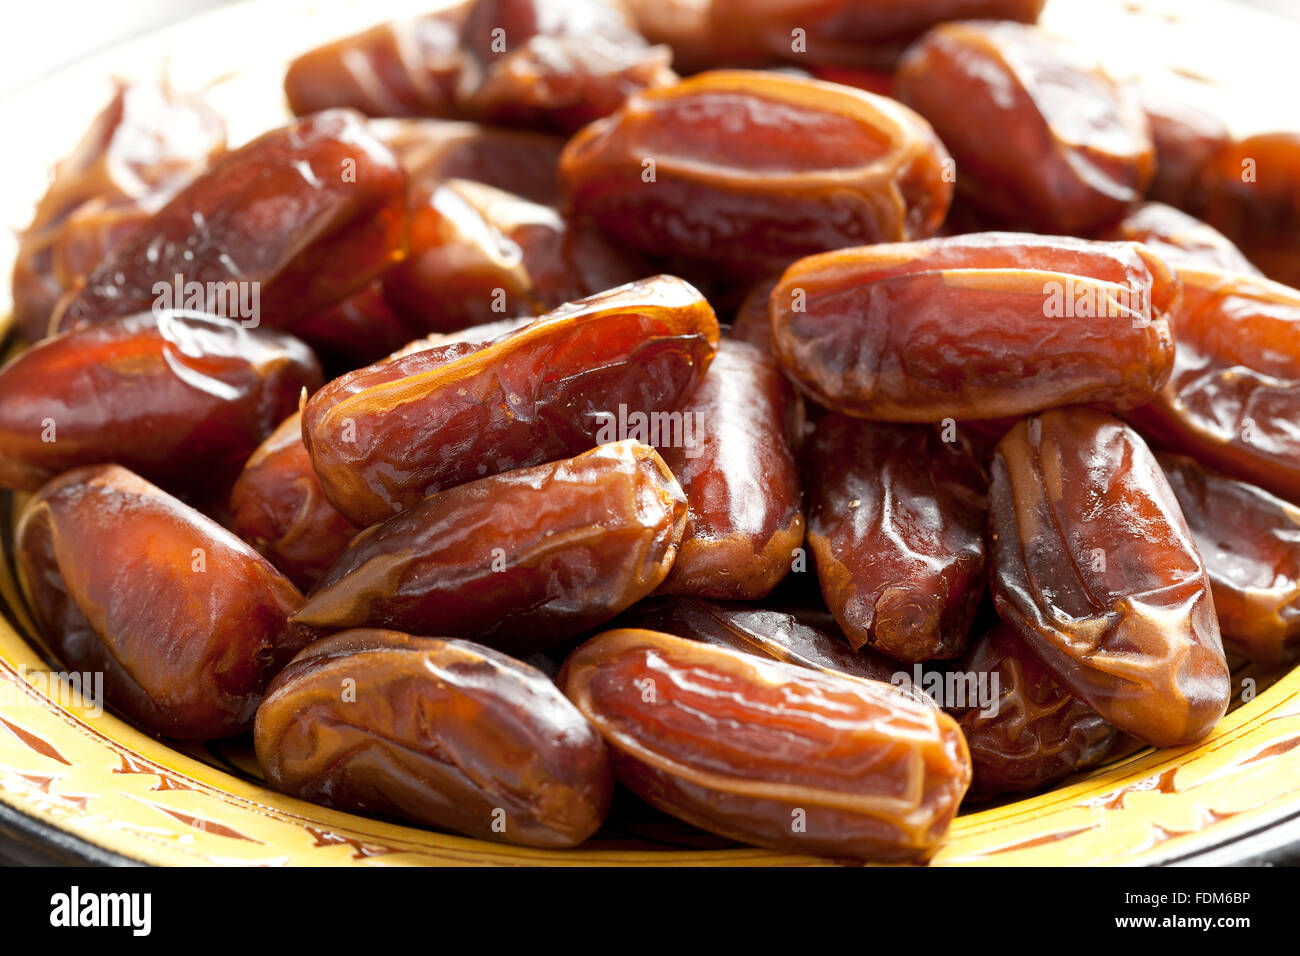 Heap of preserved dates on a dish close up - Stock Image